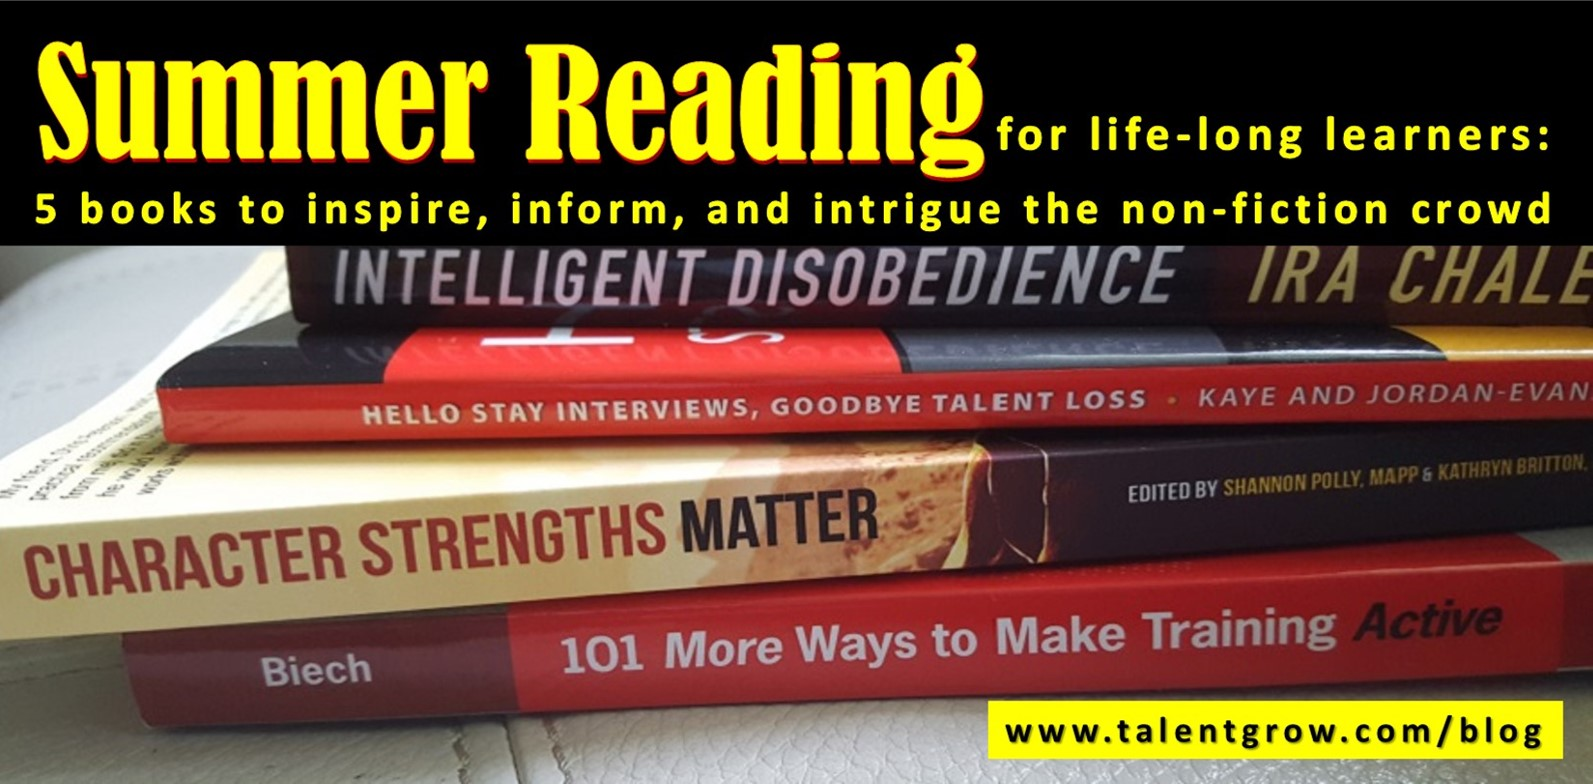 Summer Reading for life-long learners